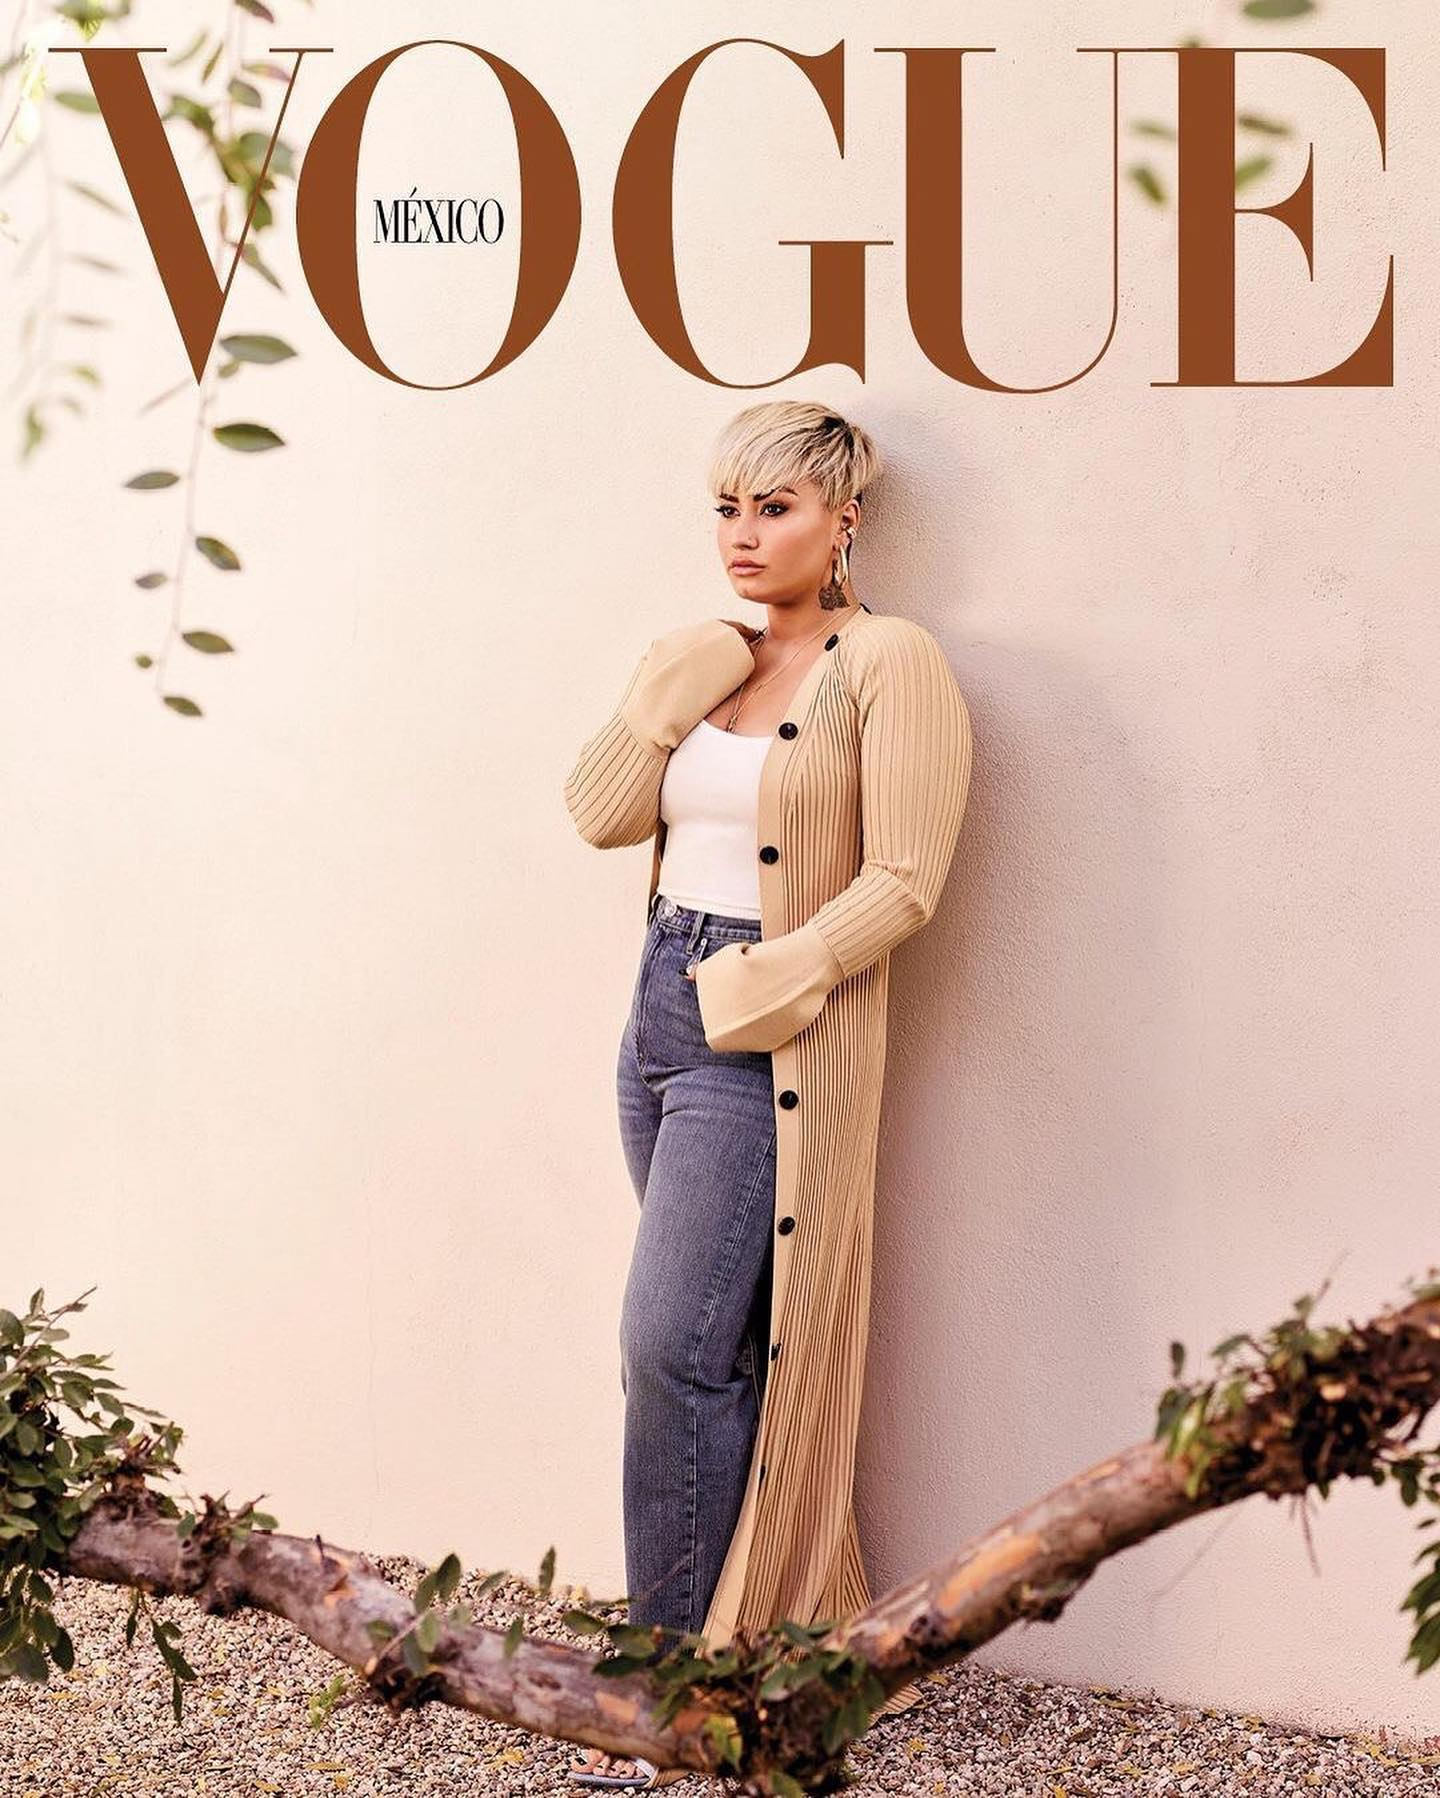 Demi Lovato stars on the Vogue Mexico April 2021 covers